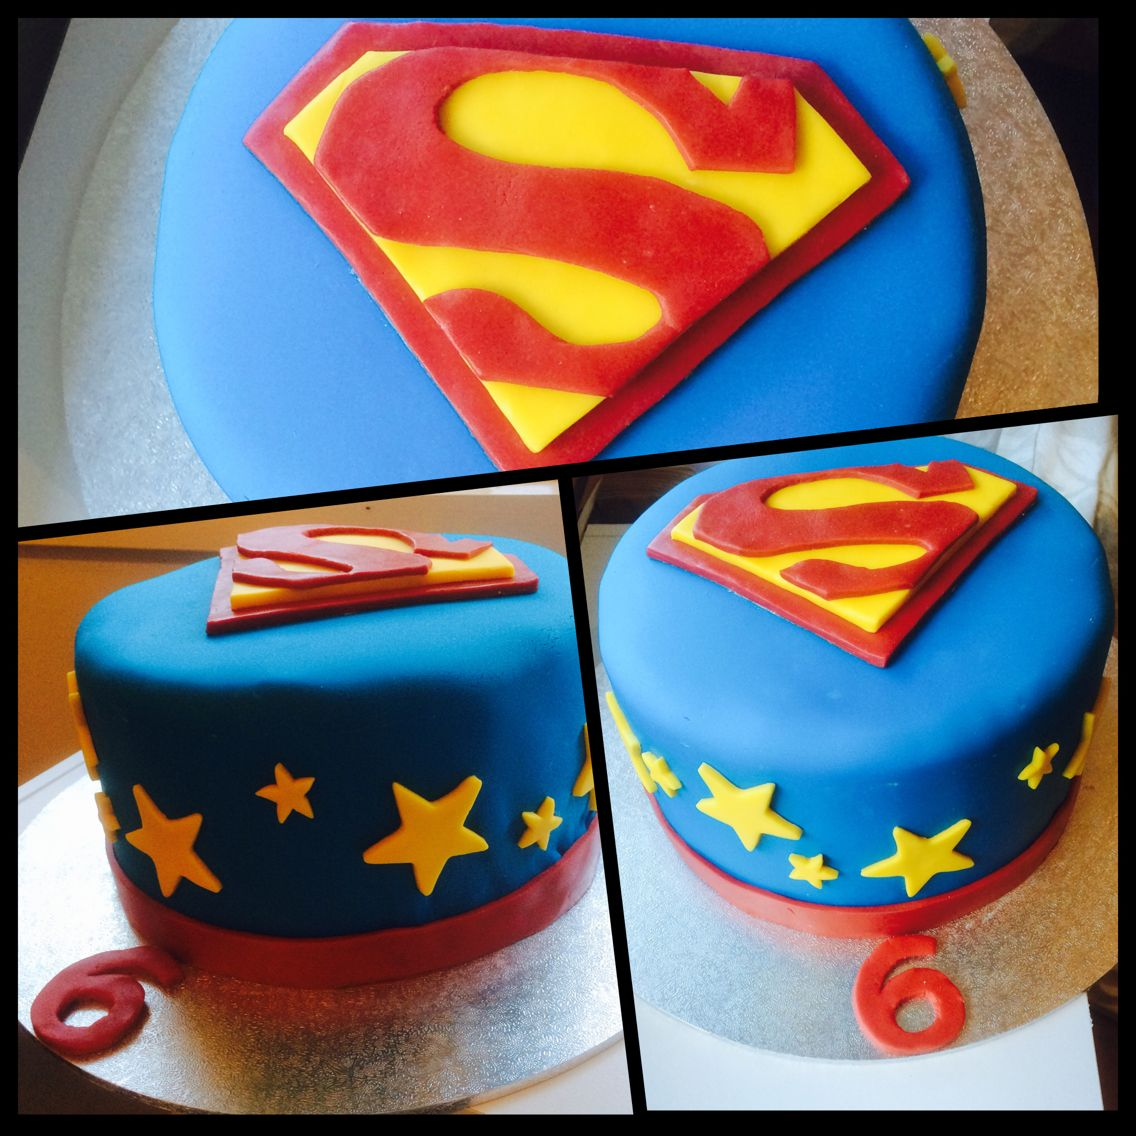 1000 ideas about superman cakes on pinterest batman cakes - Superman Cake Chocolate Cake And Fondant Happy 6th Birthday Liam